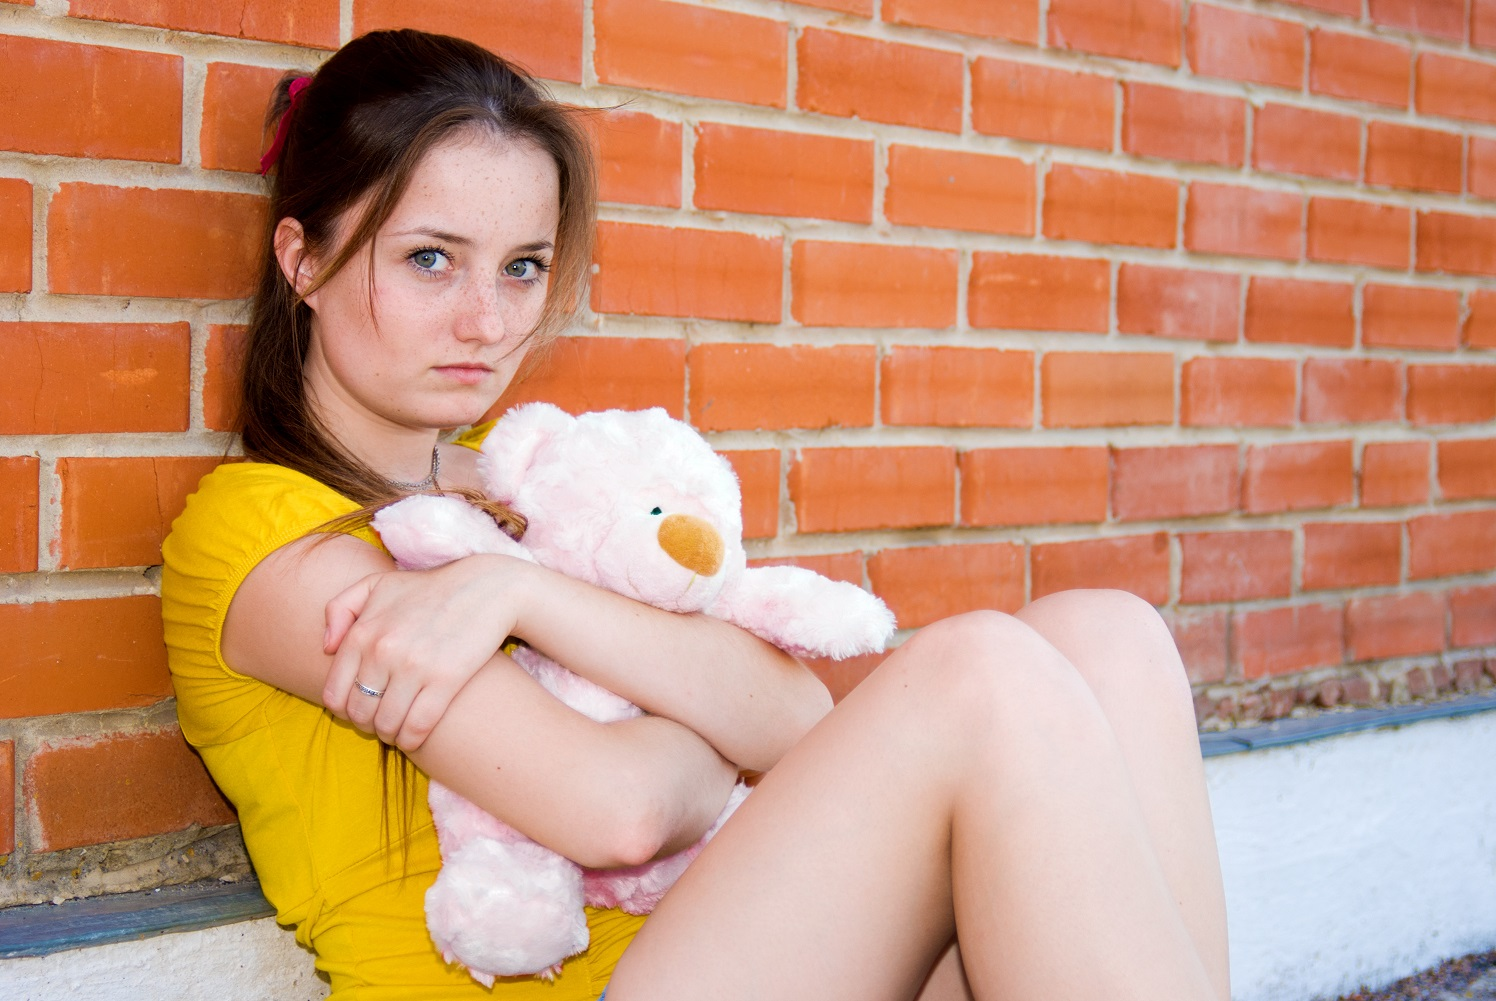 Recurrent Pregnancy Loss: Causes, Diagnosis, And Treatments